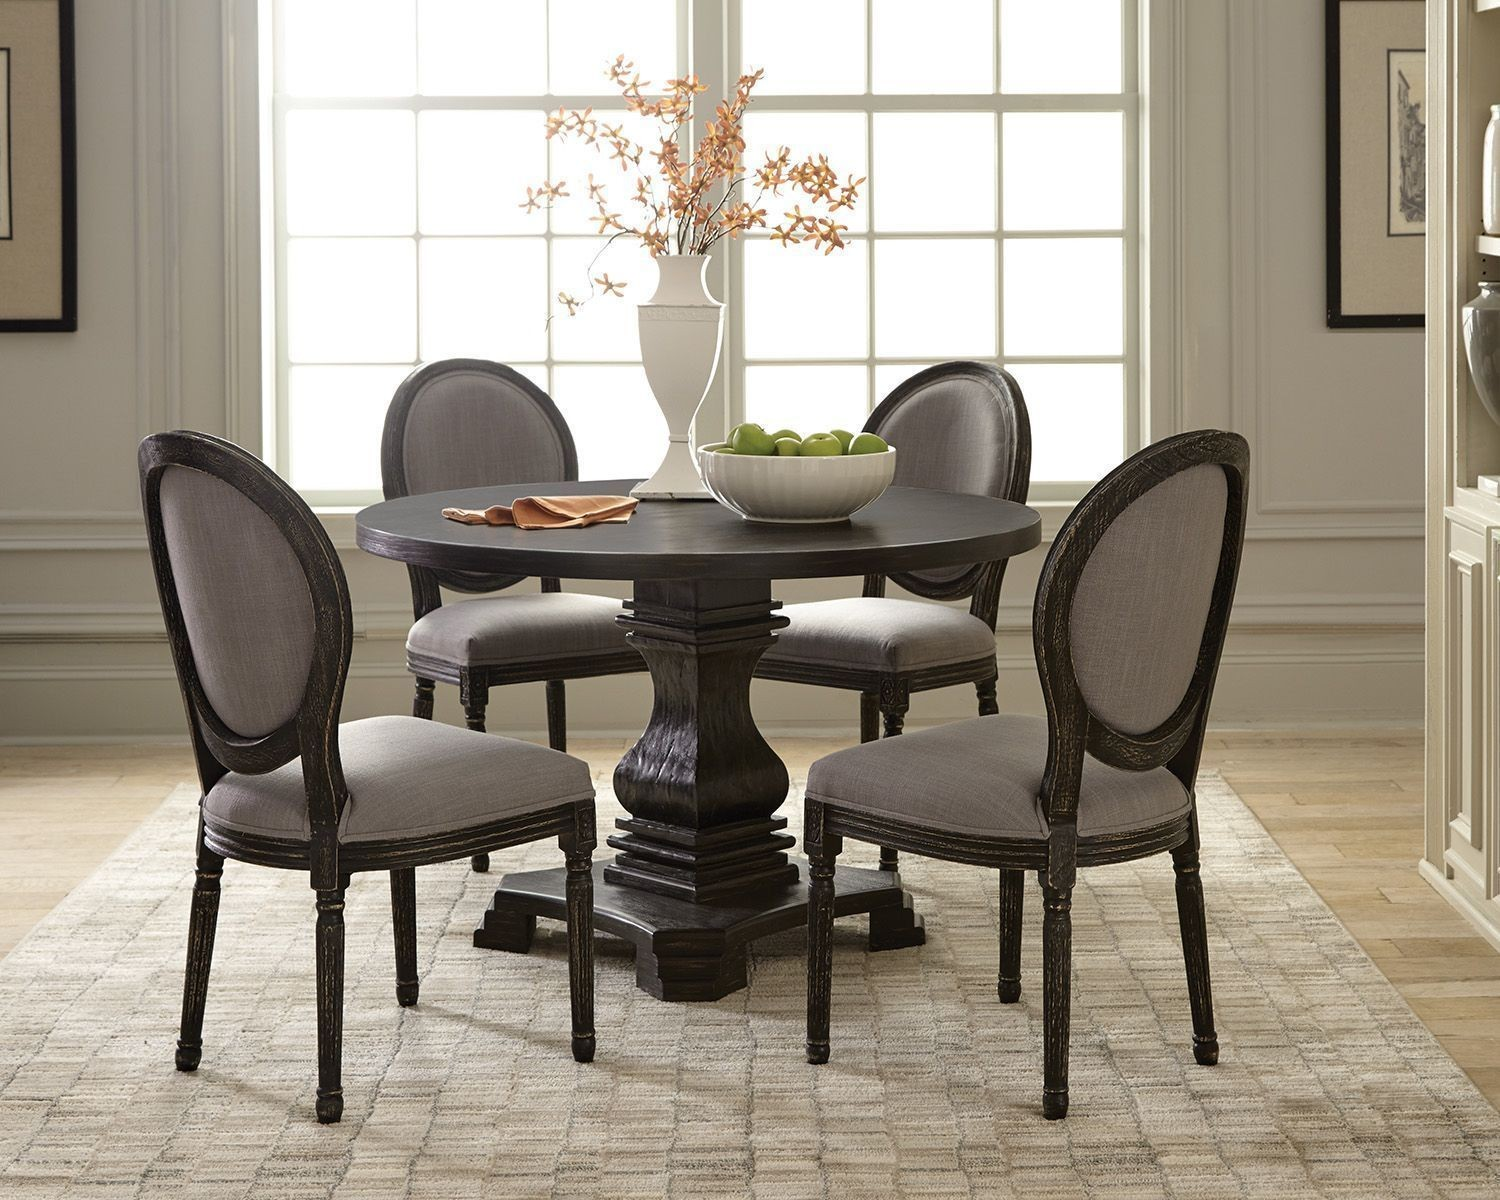 Dayton Antique Black Round Dining Room Set By Scott Living From Coaster Coleman Furniture